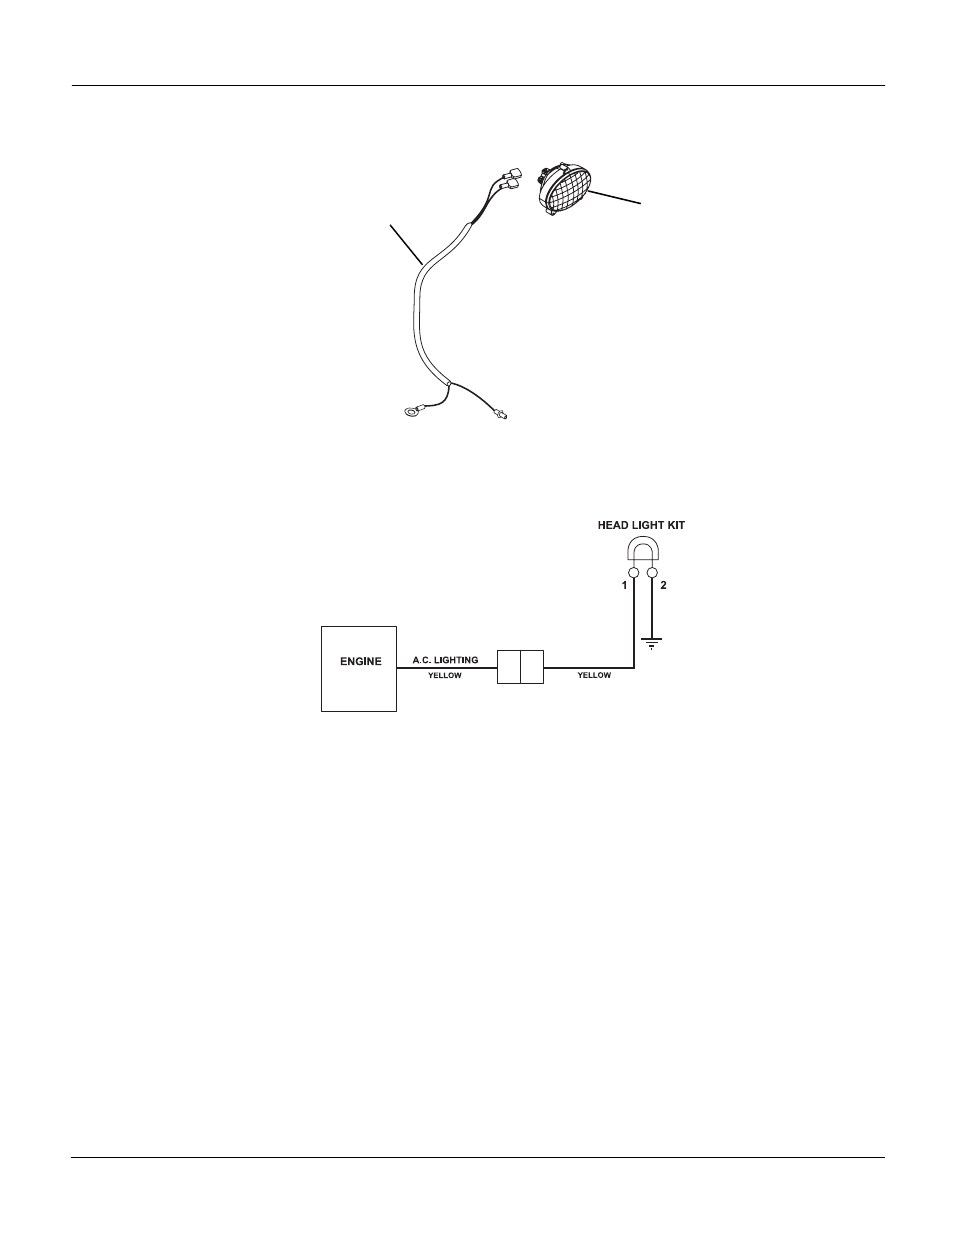 Electrical and wiring diagram, Lectrical, Iring | Ariens Sno-Thro 926300 -  11526DLE User Manual | Page 36 / 37